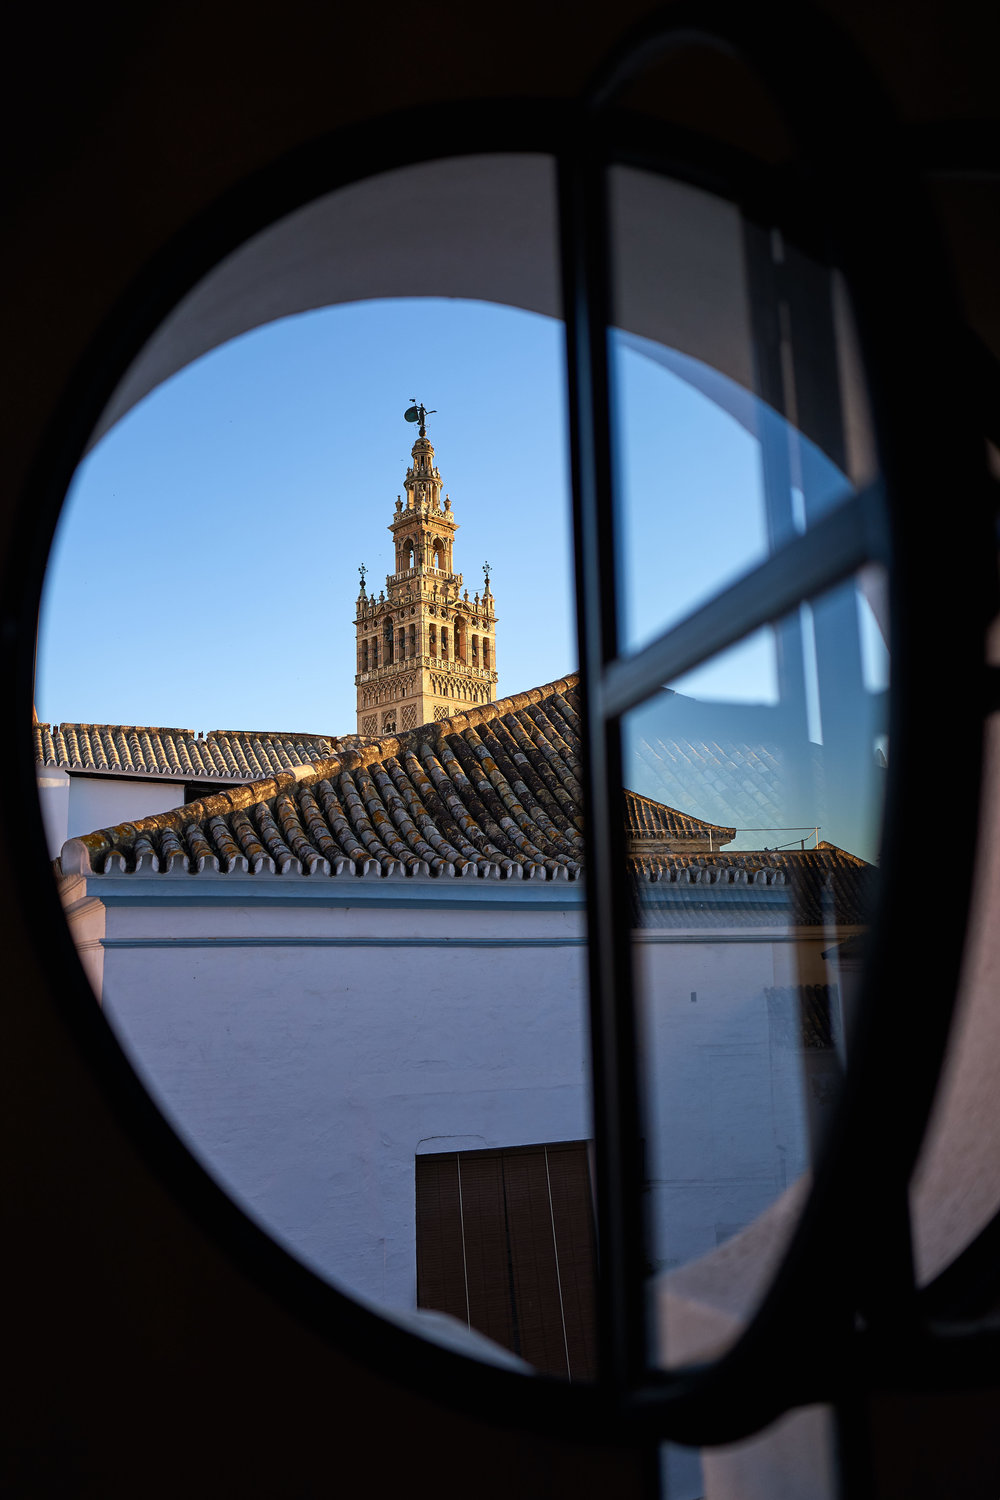 The Sevilla Giralda Tower from our hotel bedroom window - Leica Q